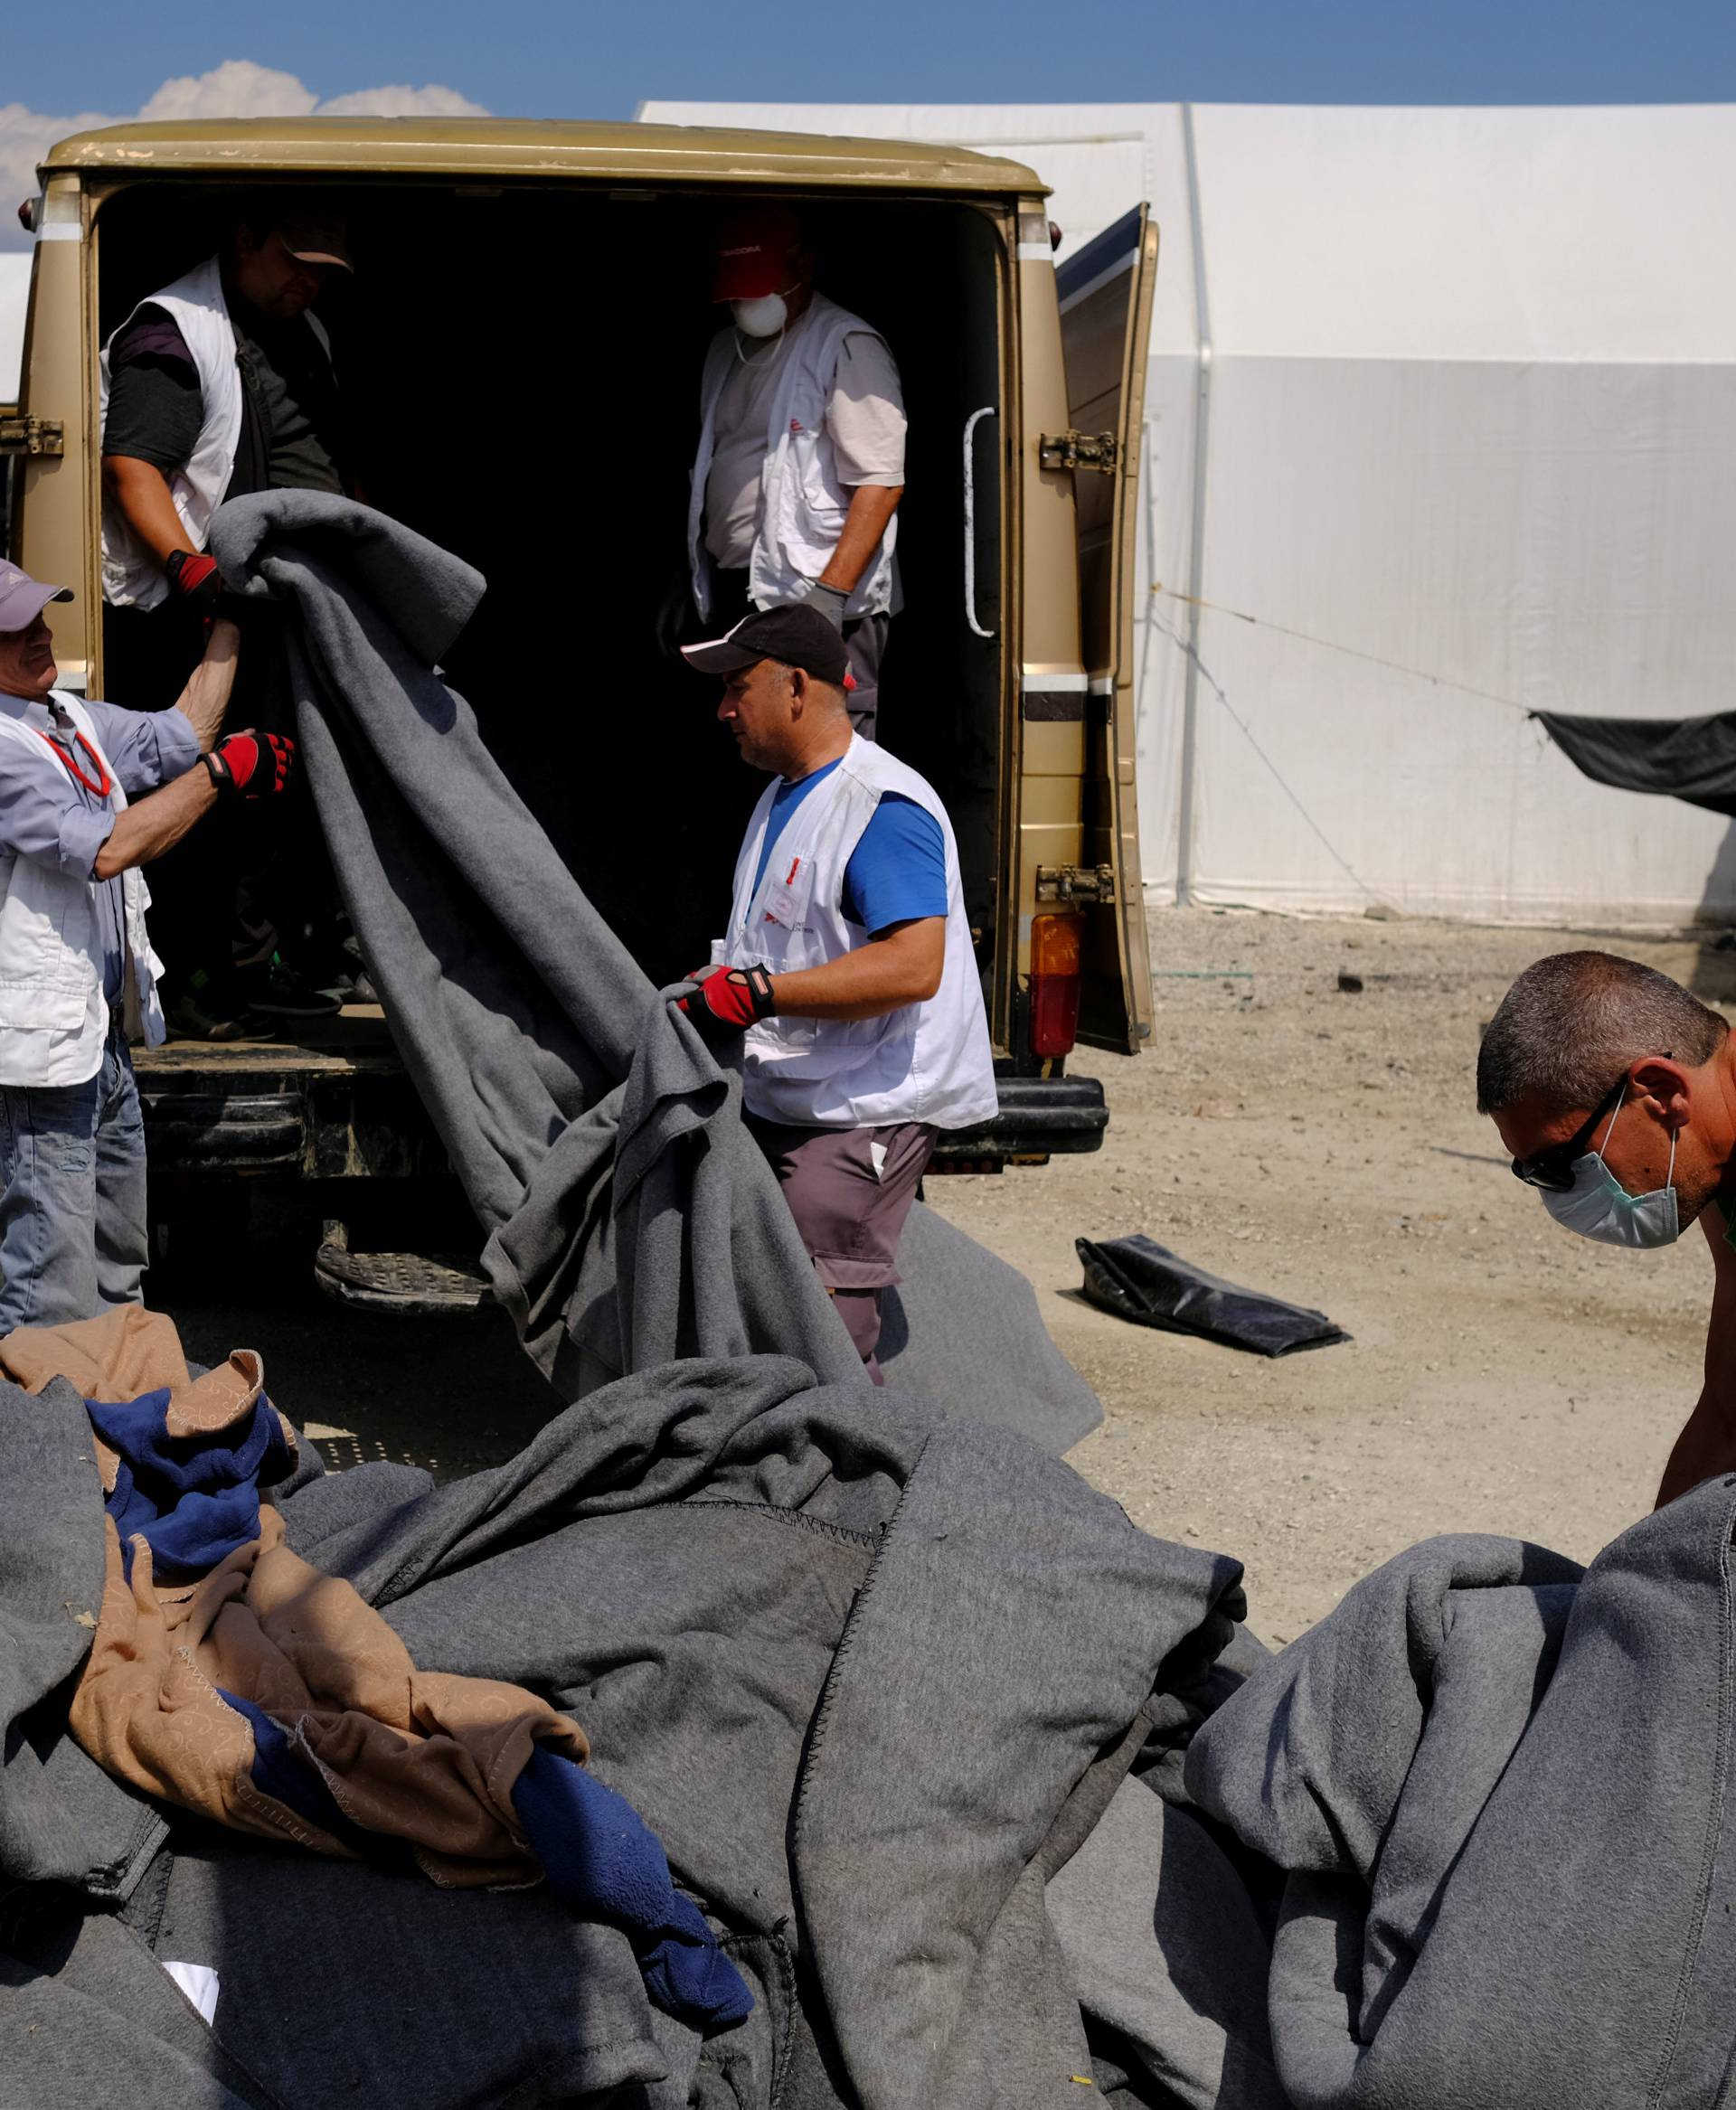 Workers remove blankets used by migrants during a police operation to evacuate a migrants' makeshift camp at the Greek-Macedonian border near the village of Idomeni